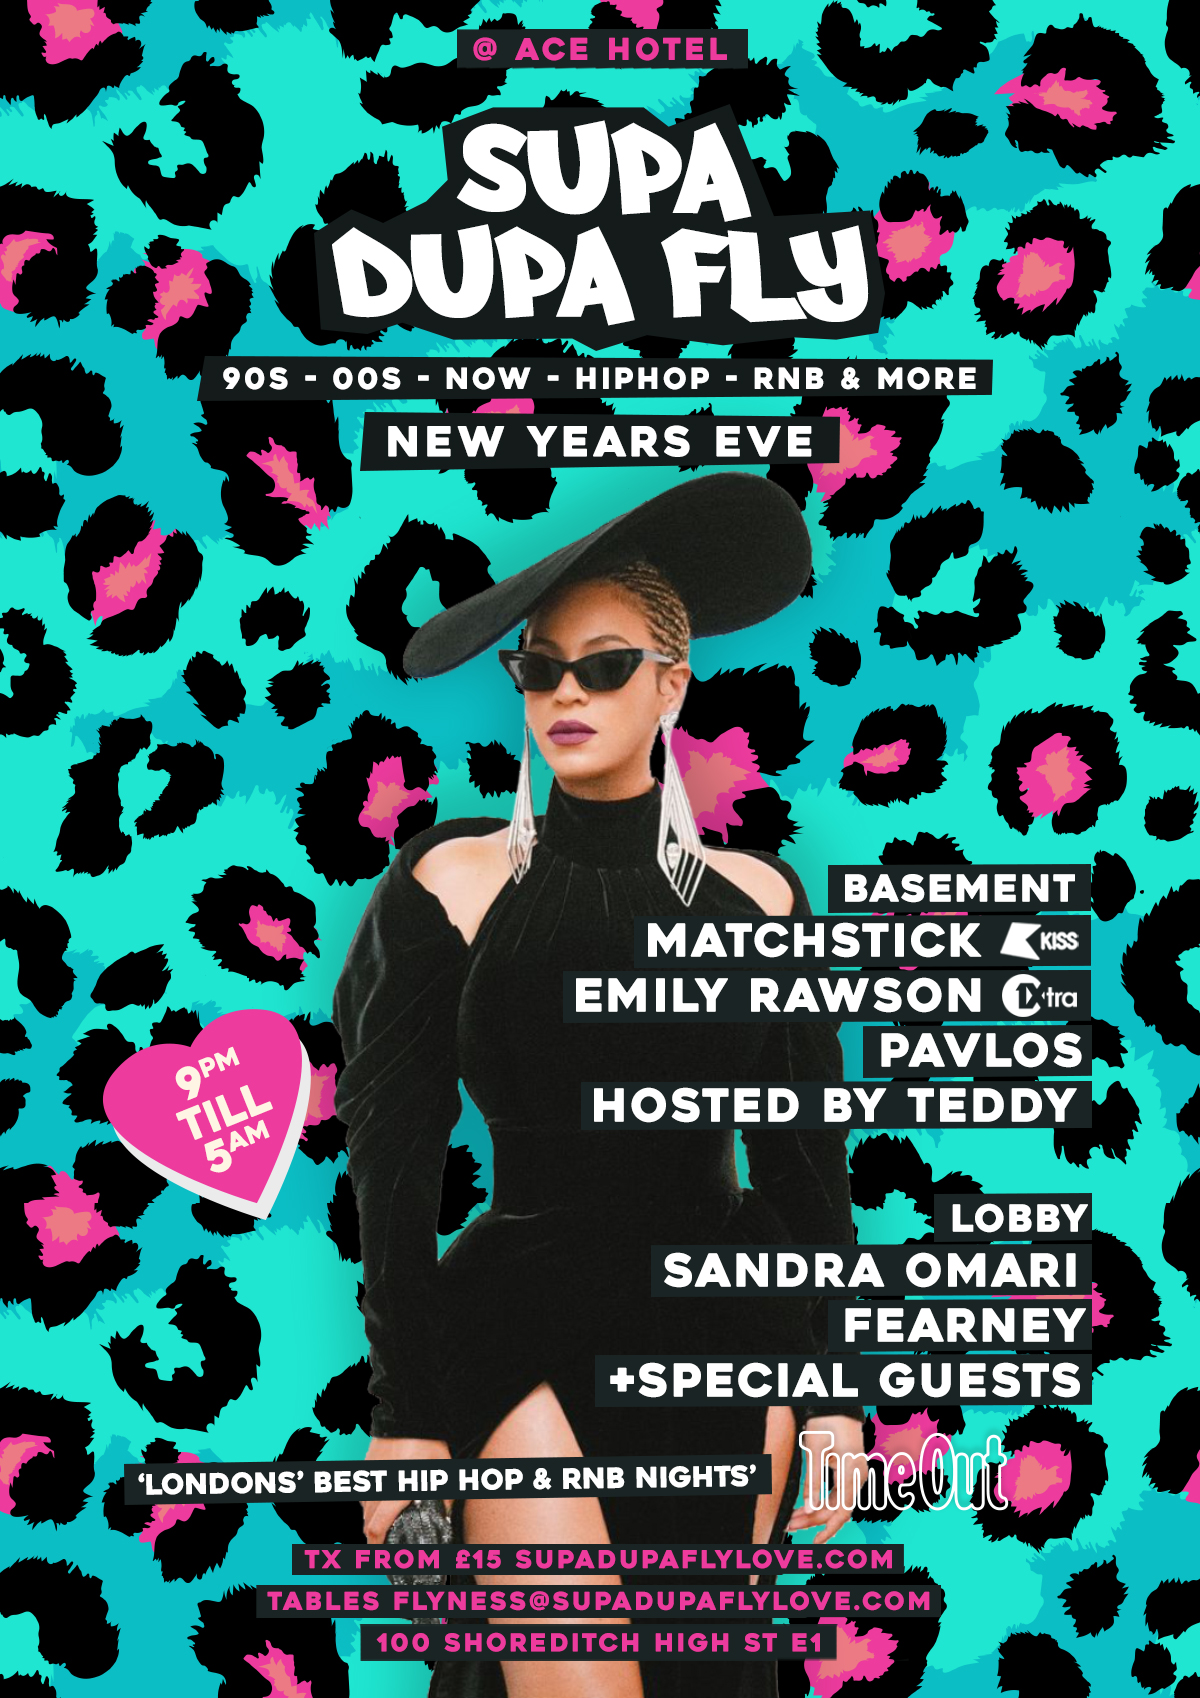 Supa Dupa Fly x New Year's Eve - SOLD OUT